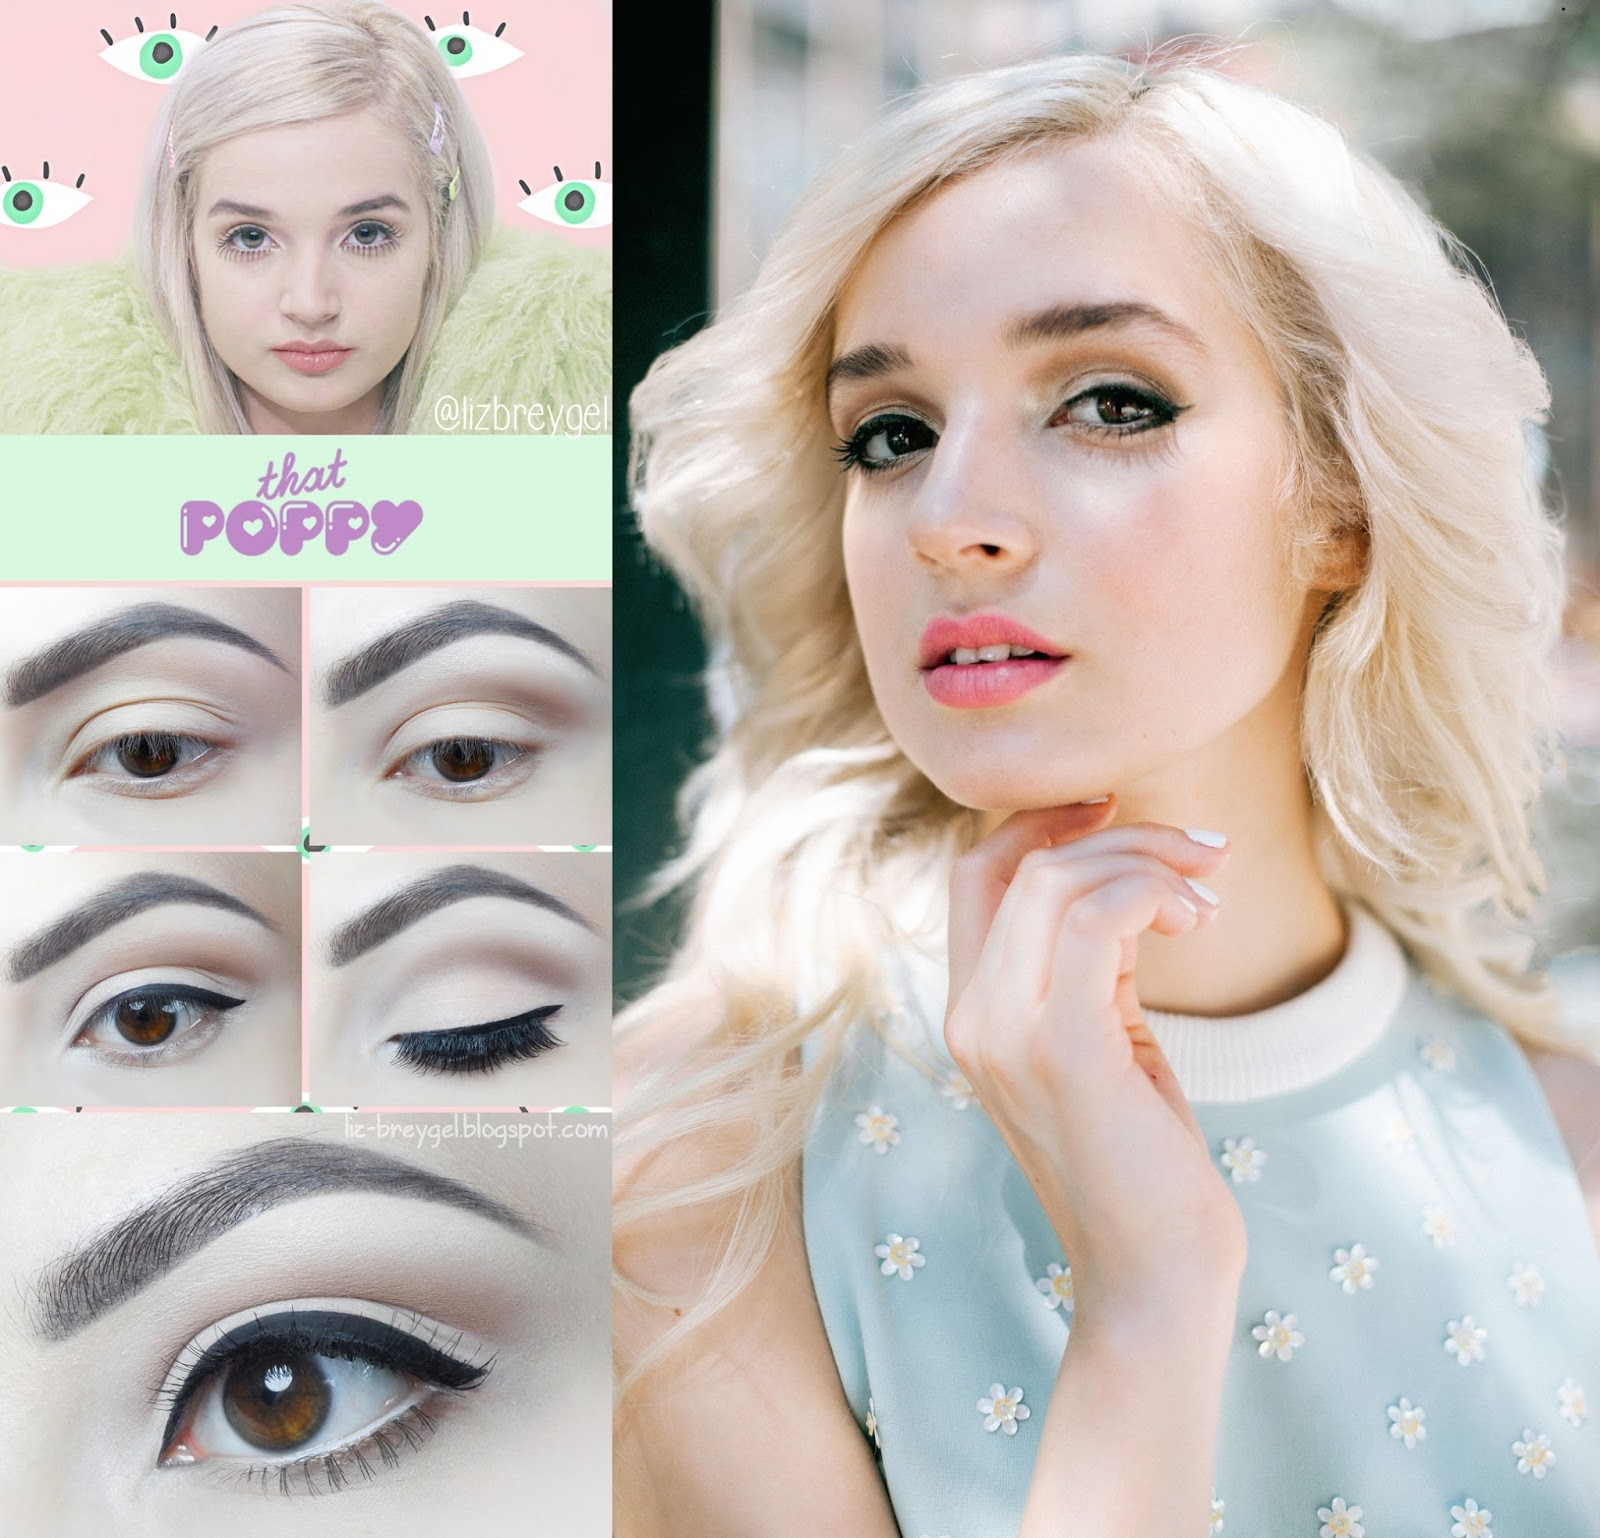 that poppy im poppy makeup tutorial step by step eye makeup for everyday brown eyes breygel